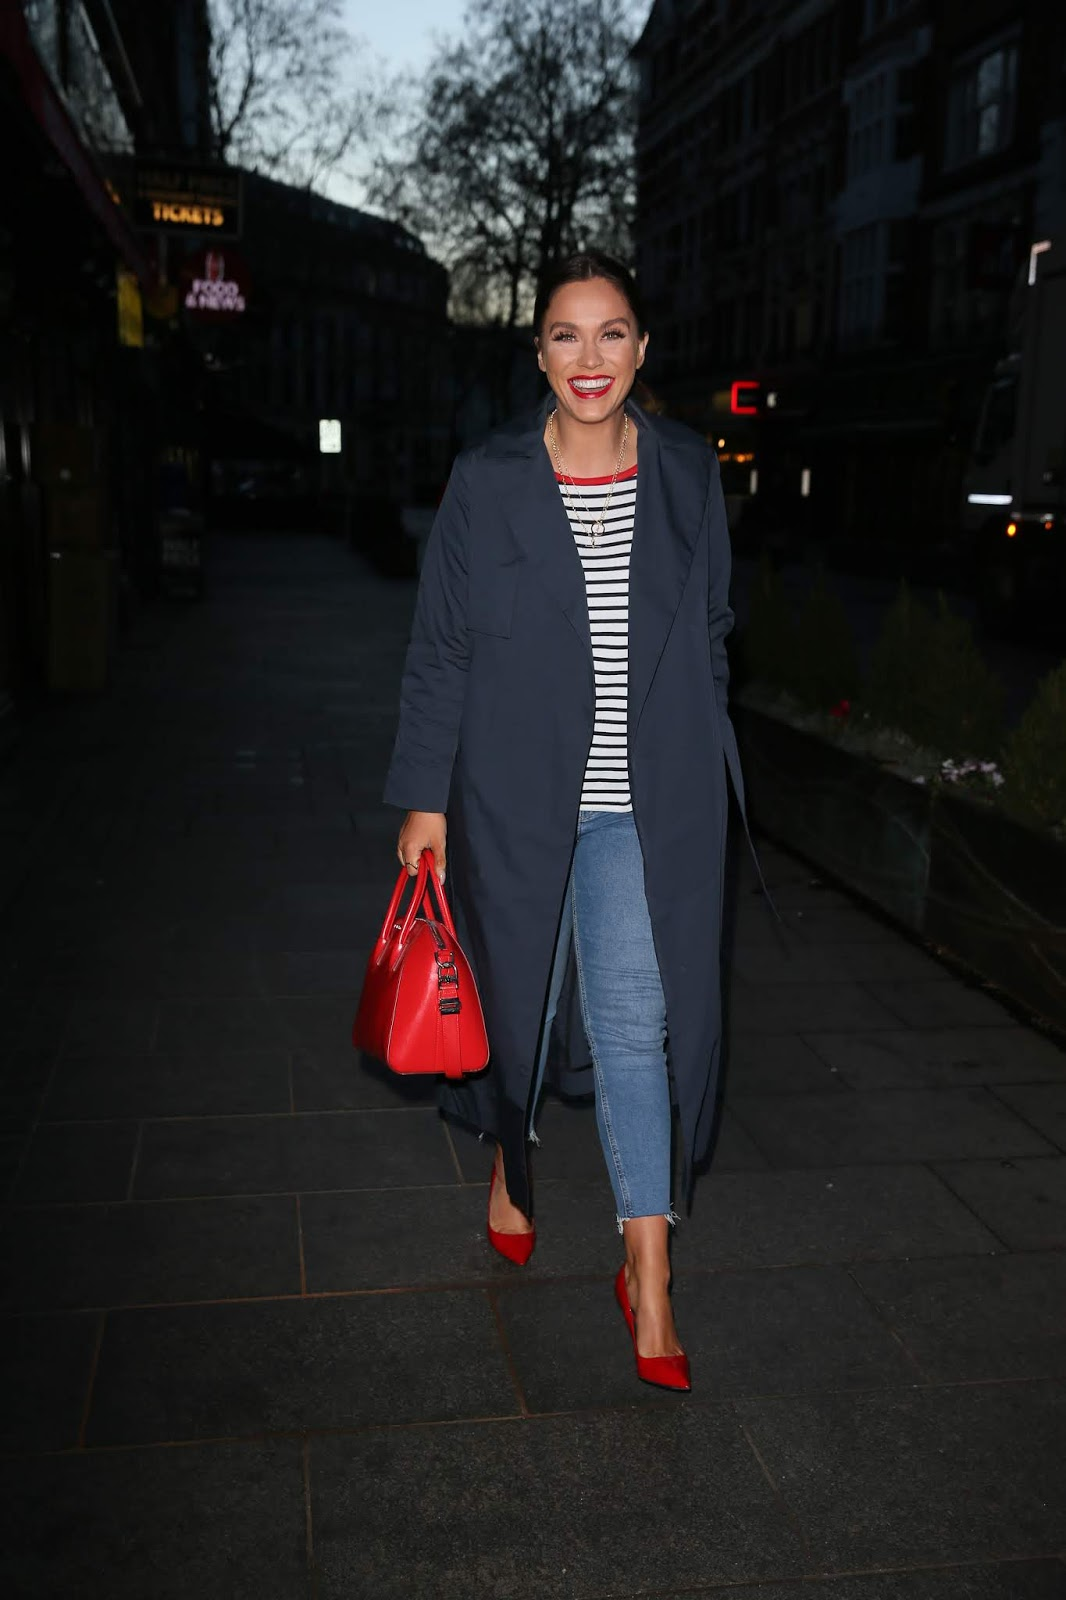 Vicky Pattison at Global Radio Studios in London - 01/30/2019